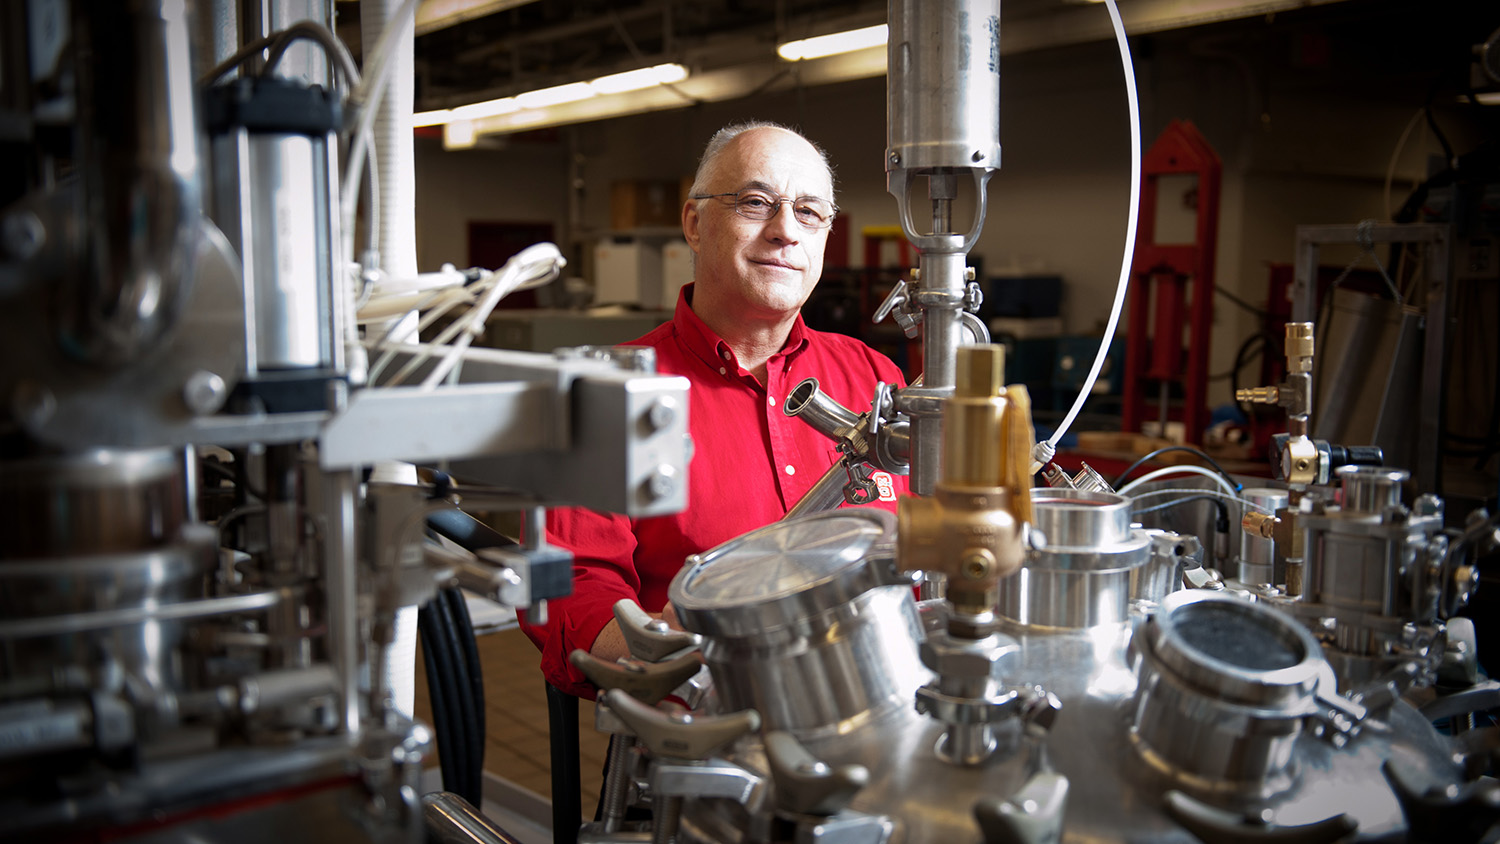 Josip Simunovic in his lab, surrounded by shiny, metal equipment.